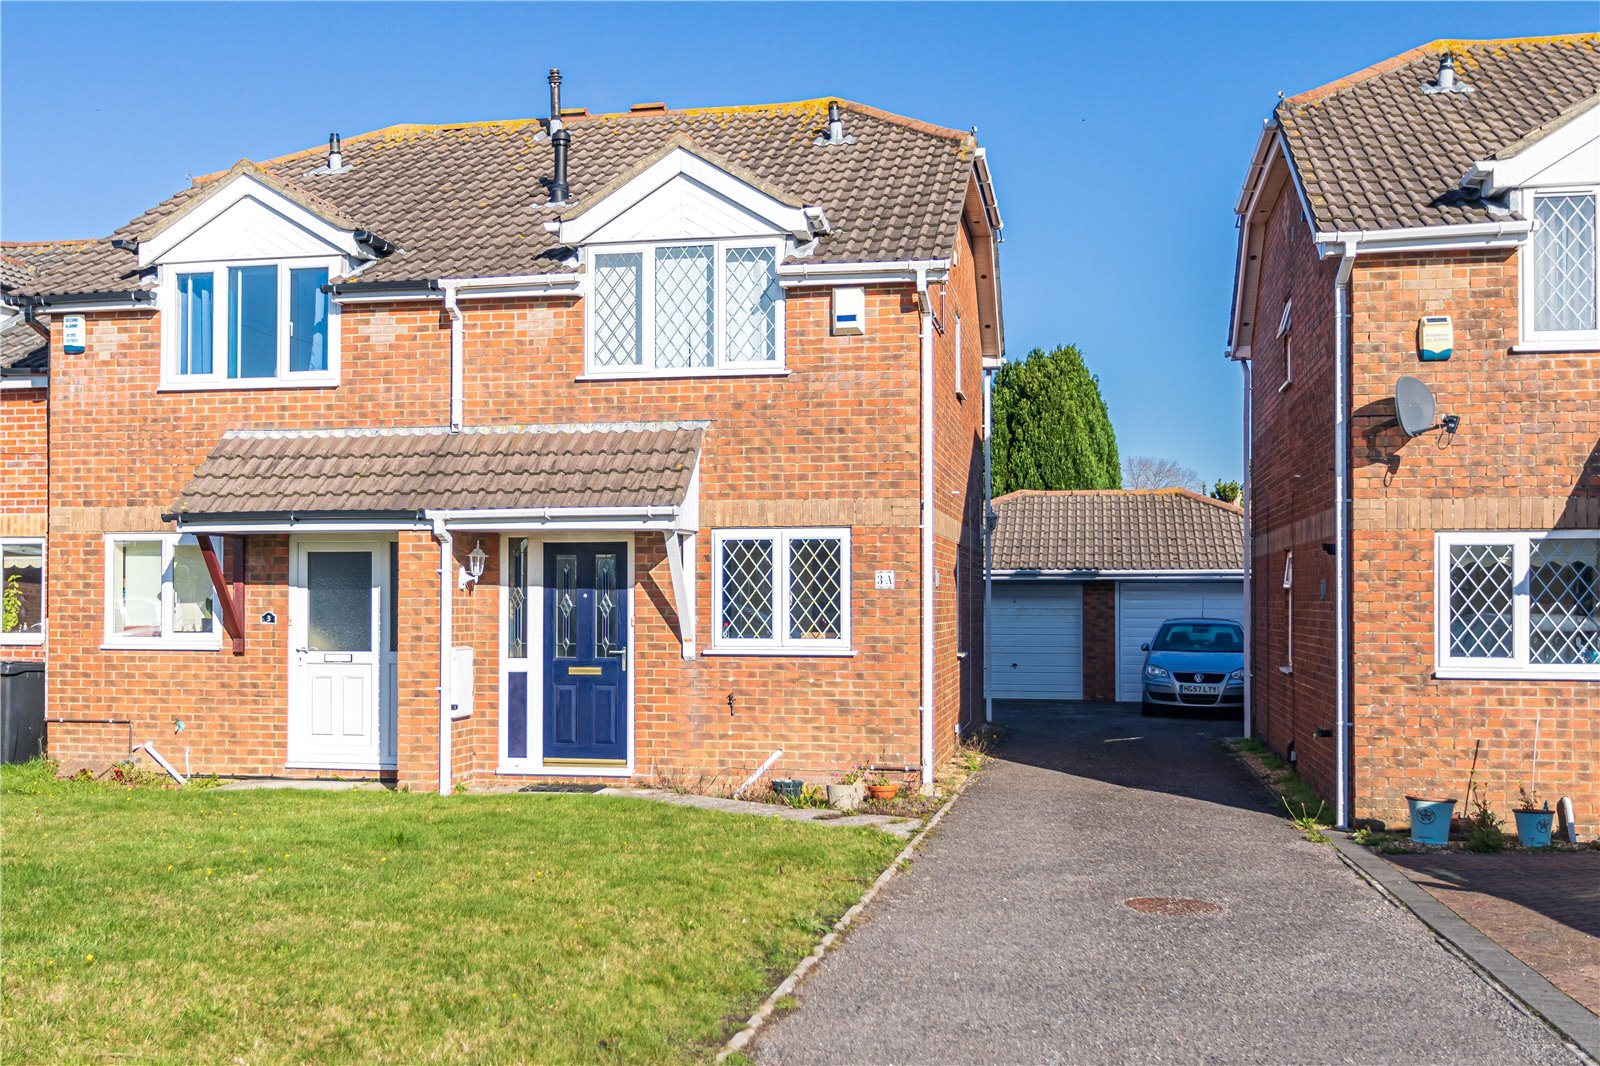 2 bed house for sale in Brixey Close, Parkstone, BH12